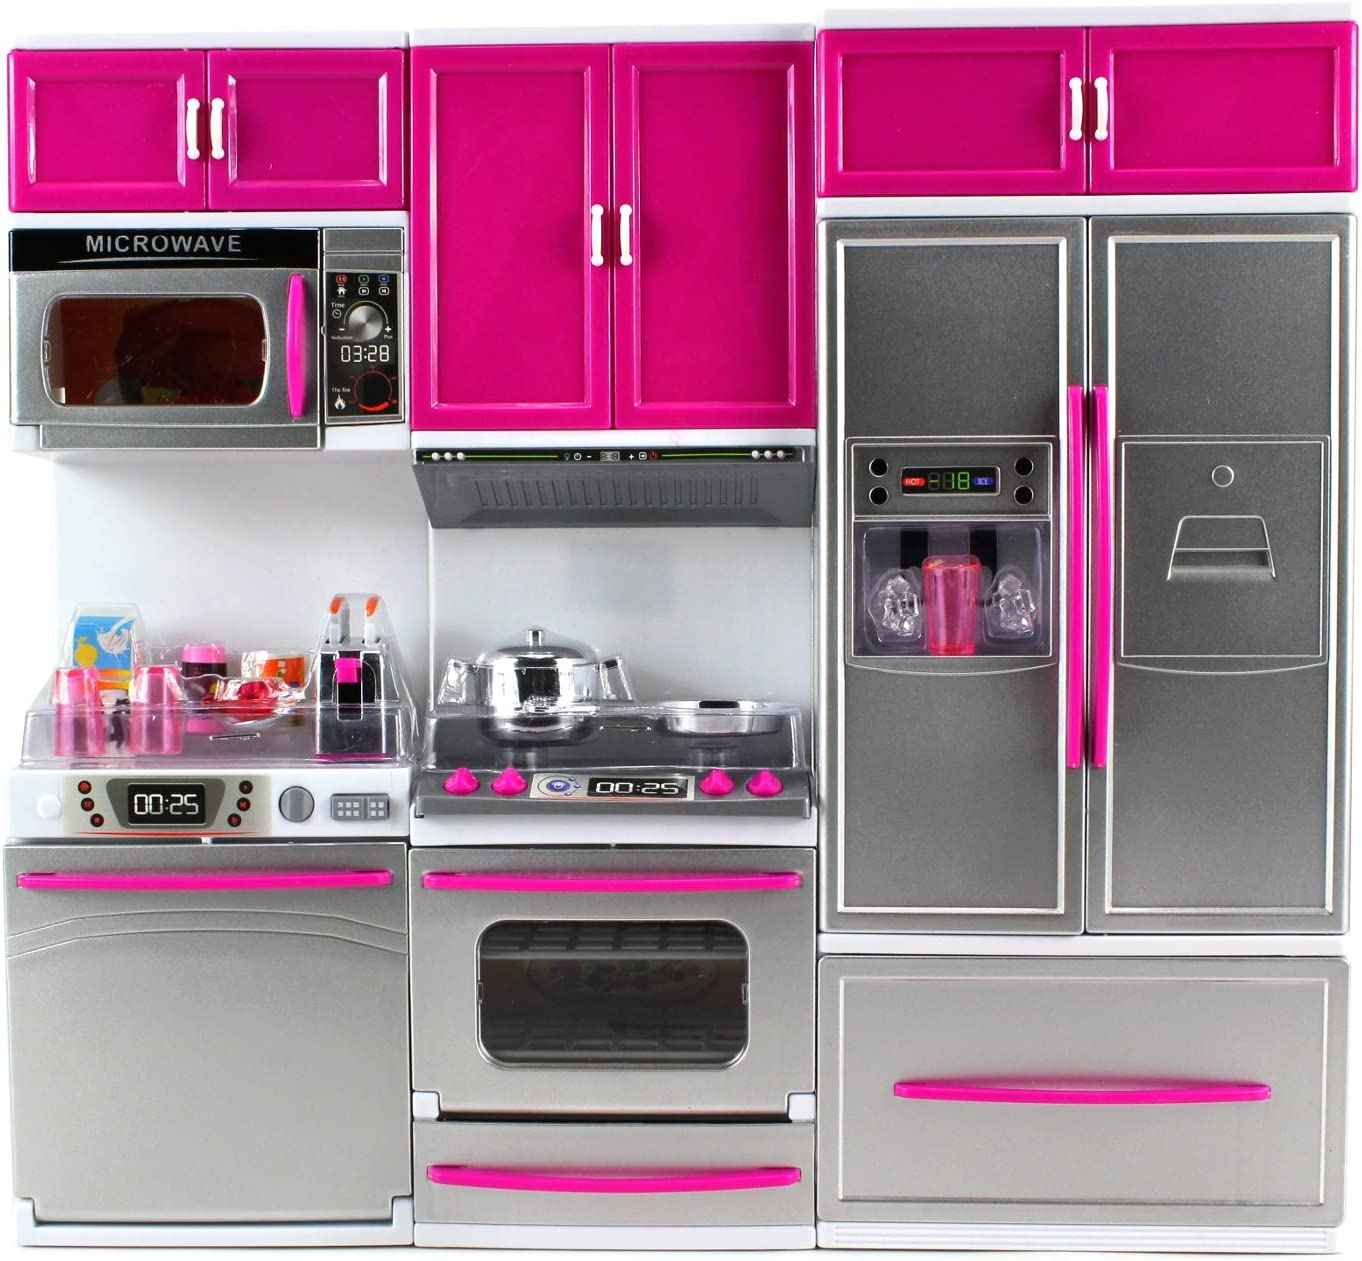 Velocity Toys My Modern Kitchen Dishwasher Stove Refrigerator Battery Operated Toy Doll Kitchen Playset w/ Lights, Sounds, Perfect for Use with 11-12